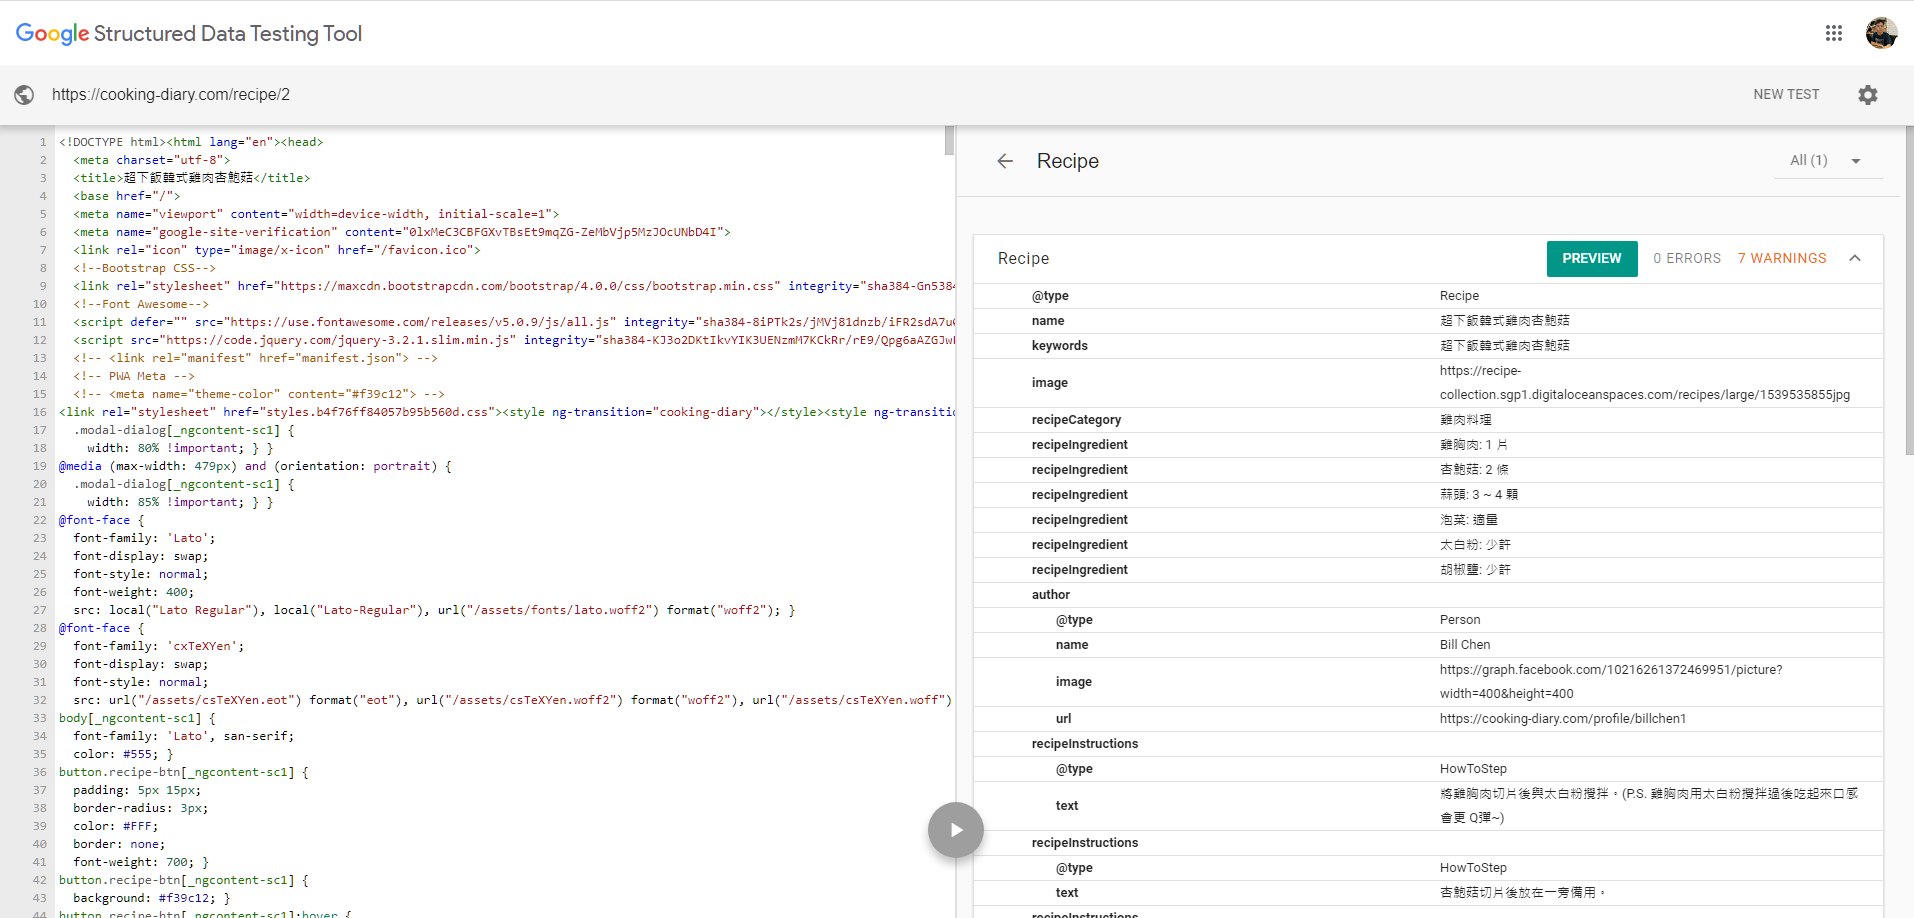 Structured Data Testing Tool Result